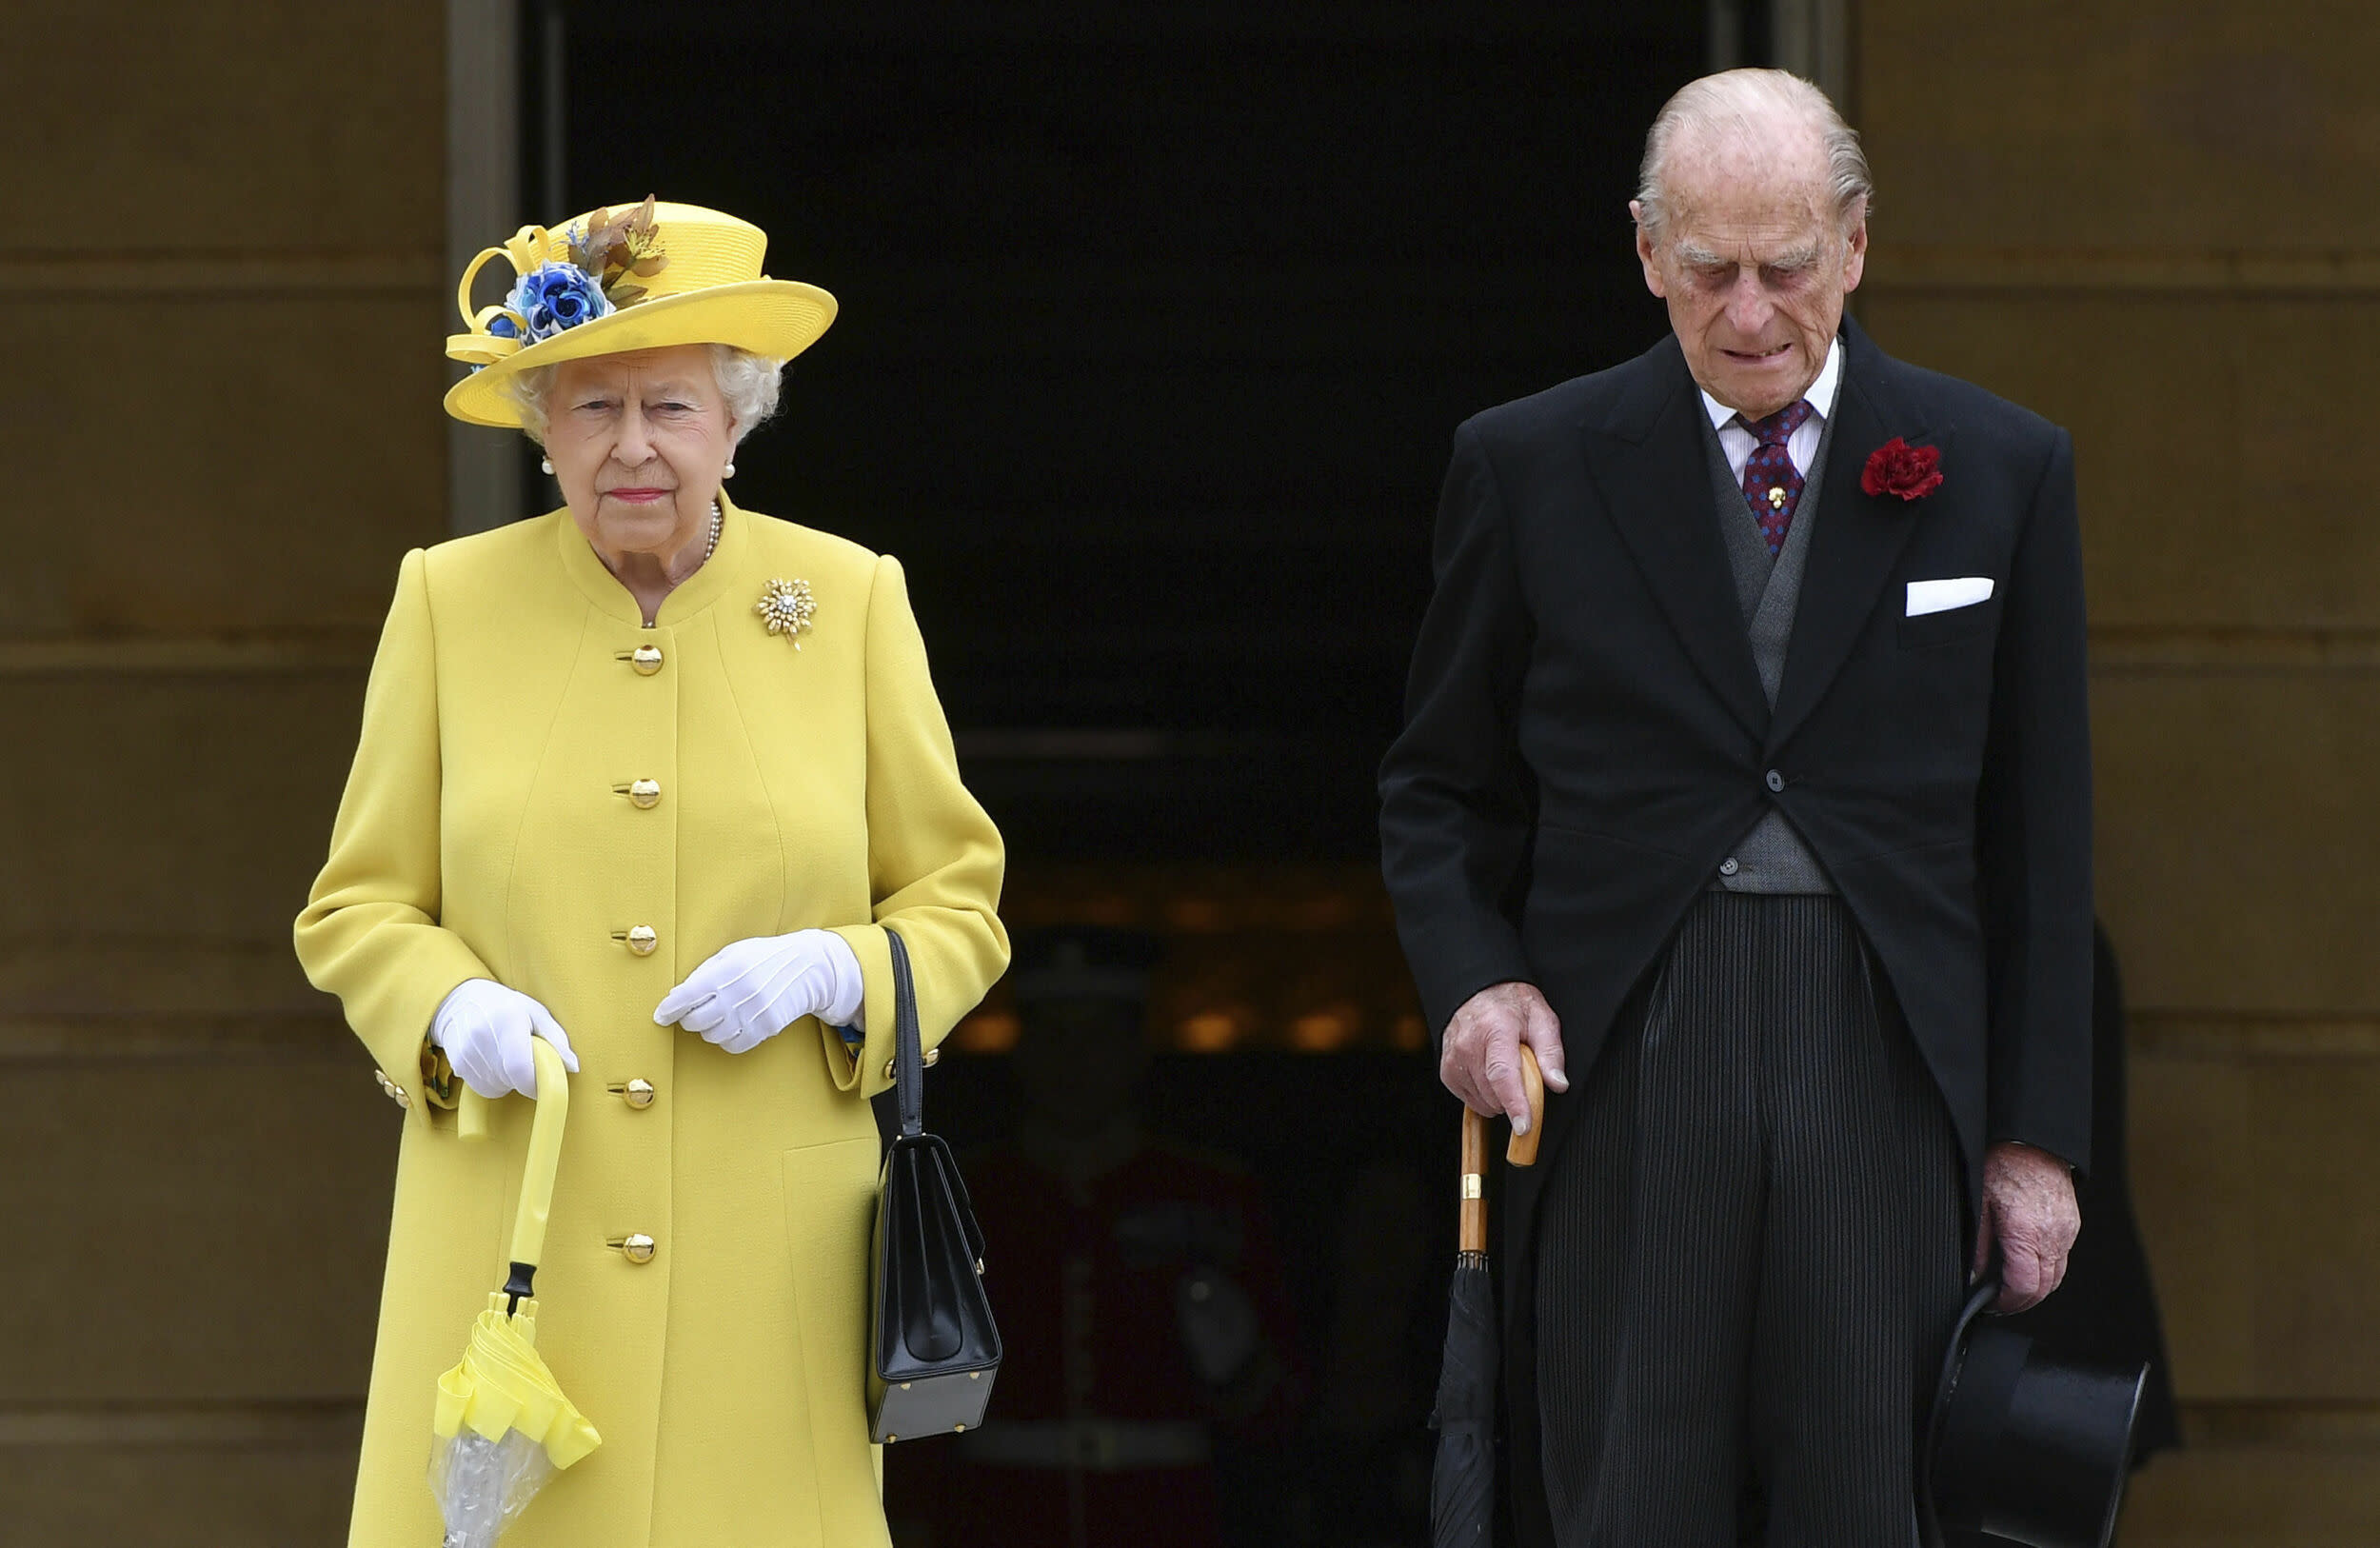 Britain's Queen Elizabeth and Prince Philip observe a minute's silence, at the start of a garden party at Buckingham Palace in London, Tuesday, May 23, 2017. The Islamic State group claimed responsibility Tuesday for the suicide attack at an Ariana Grande show that left over 20 people dead and dozens injured. (Dominic Lipinski/Pool Photo via AP)